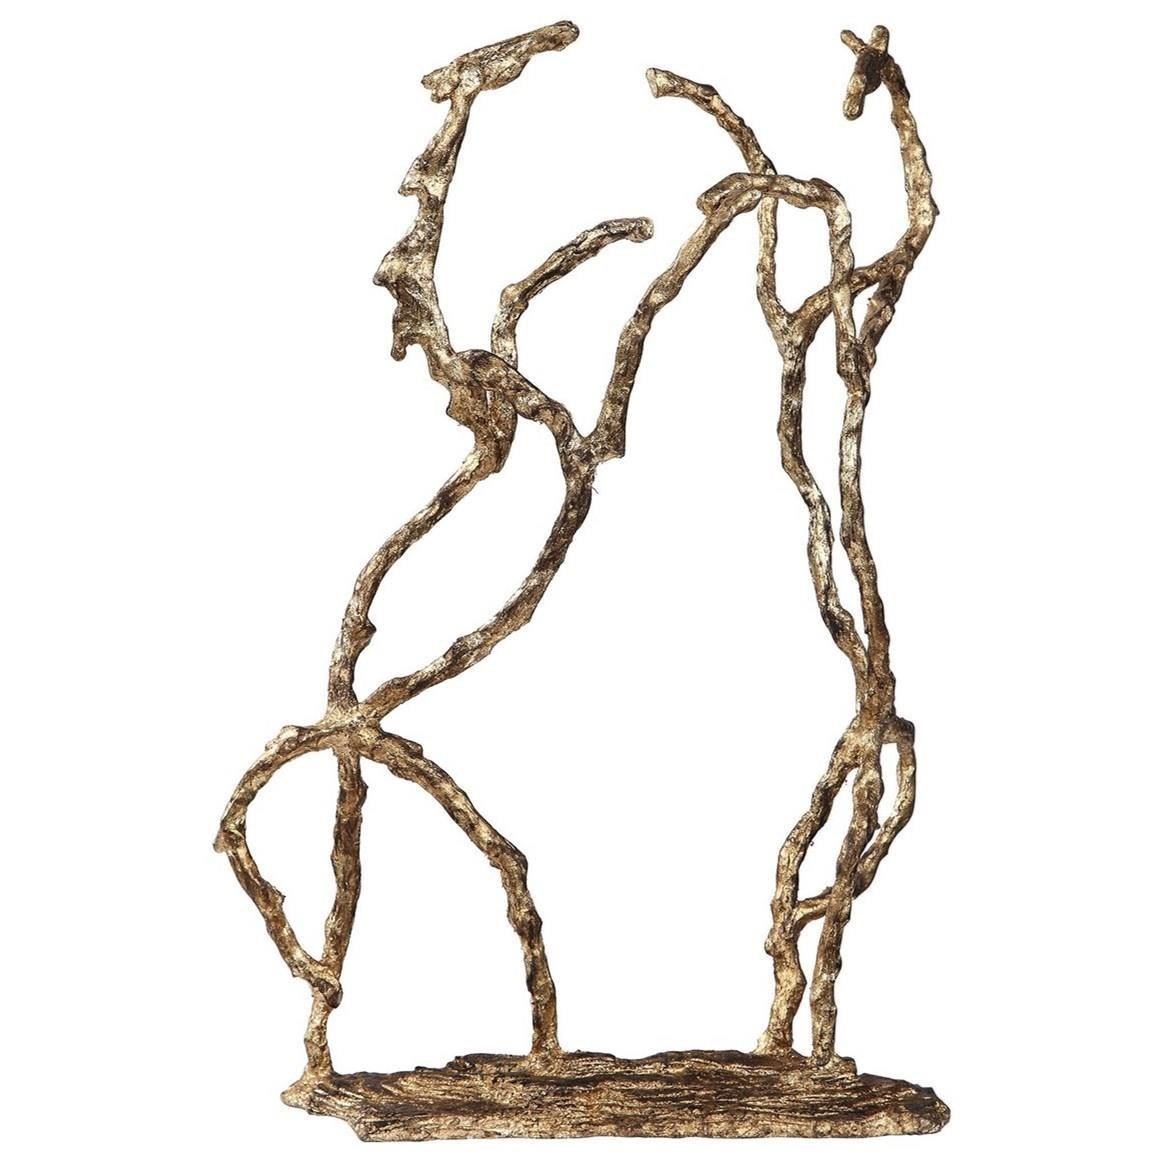 Accessories - Statues and Figurines Equine Gold Sculpture by Uttermost at Mueller Furniture